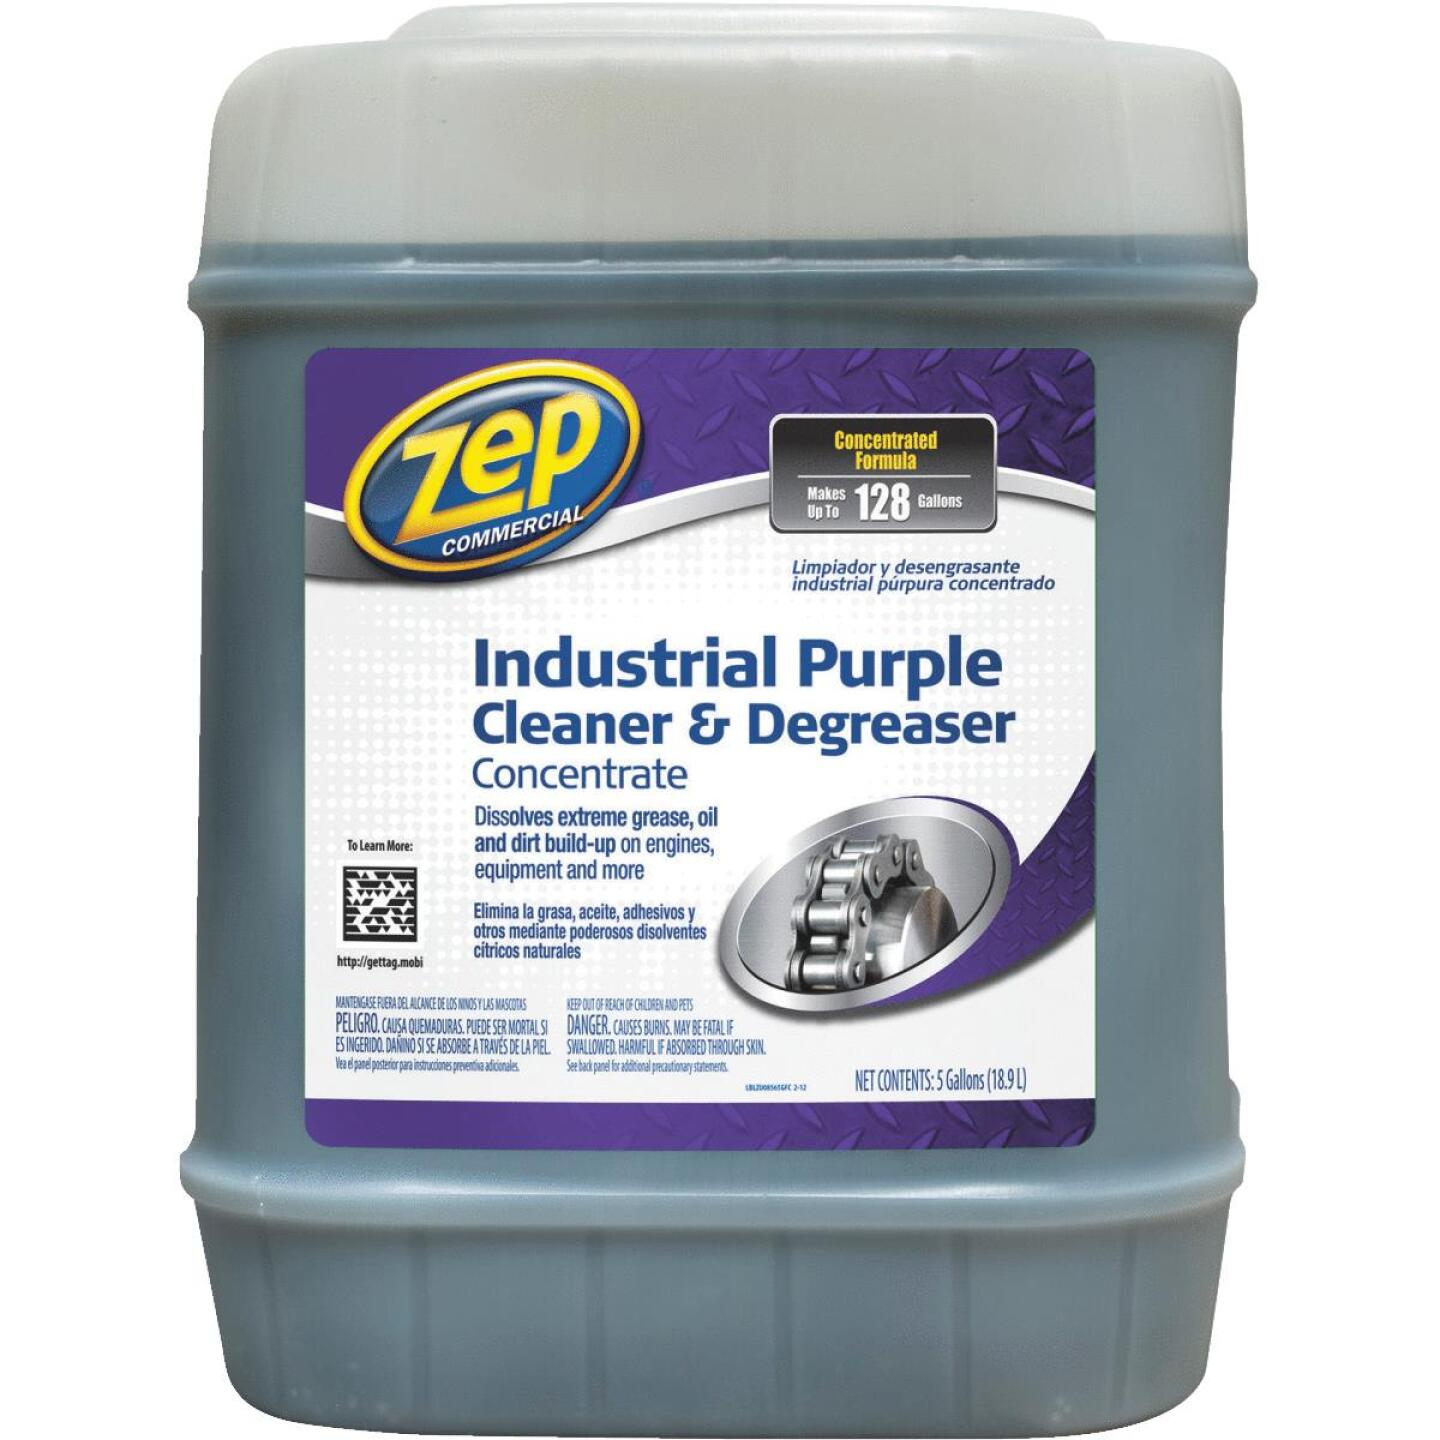 Zep 5 Gal. Industrial Purple Cleaner & Degreaser Concentrate Image 1